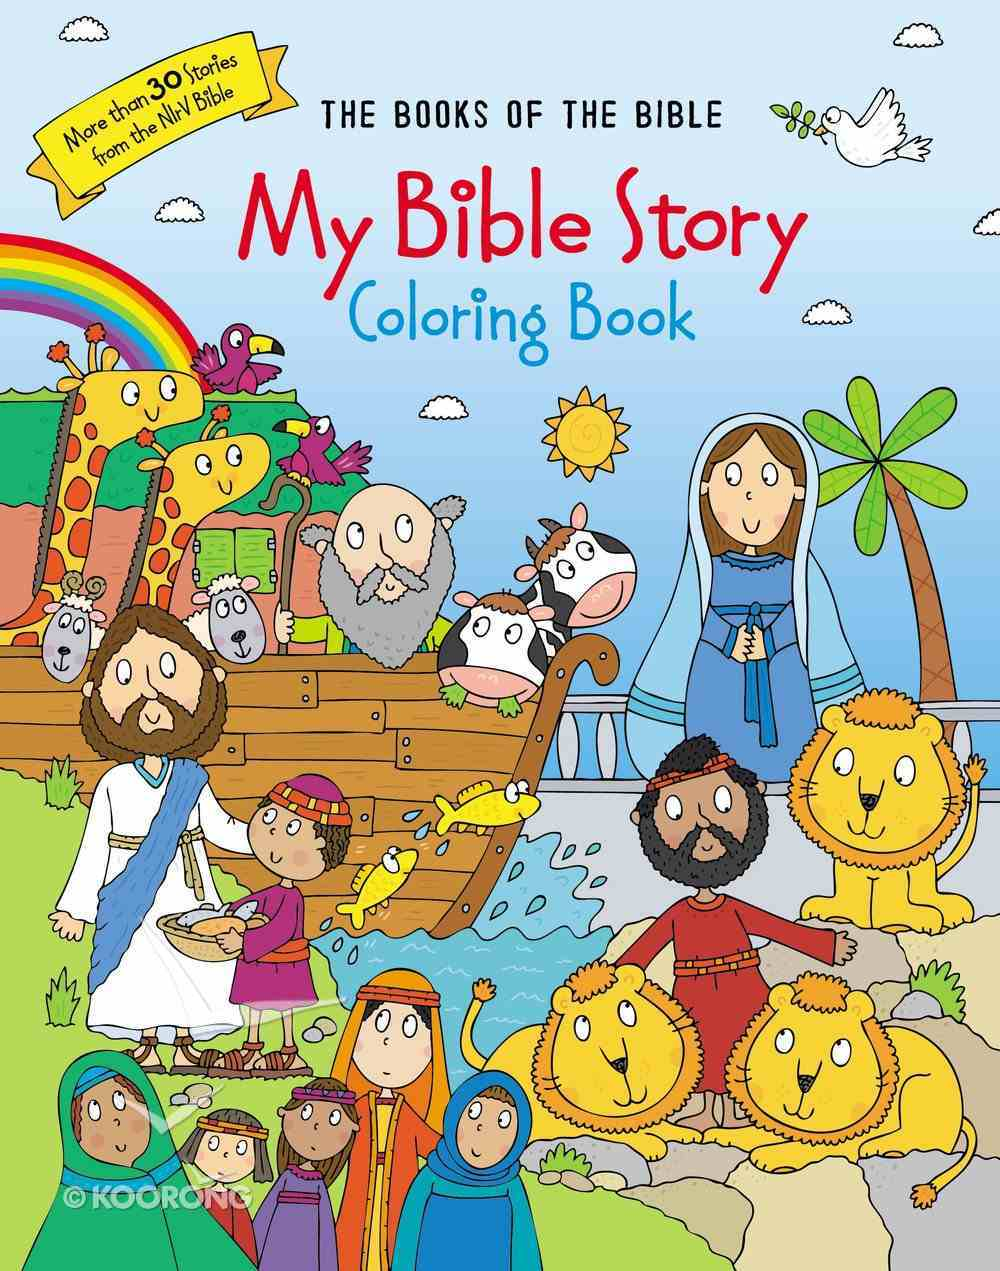 My Bible Story Coloring Book: The Books of the Bible Paperback